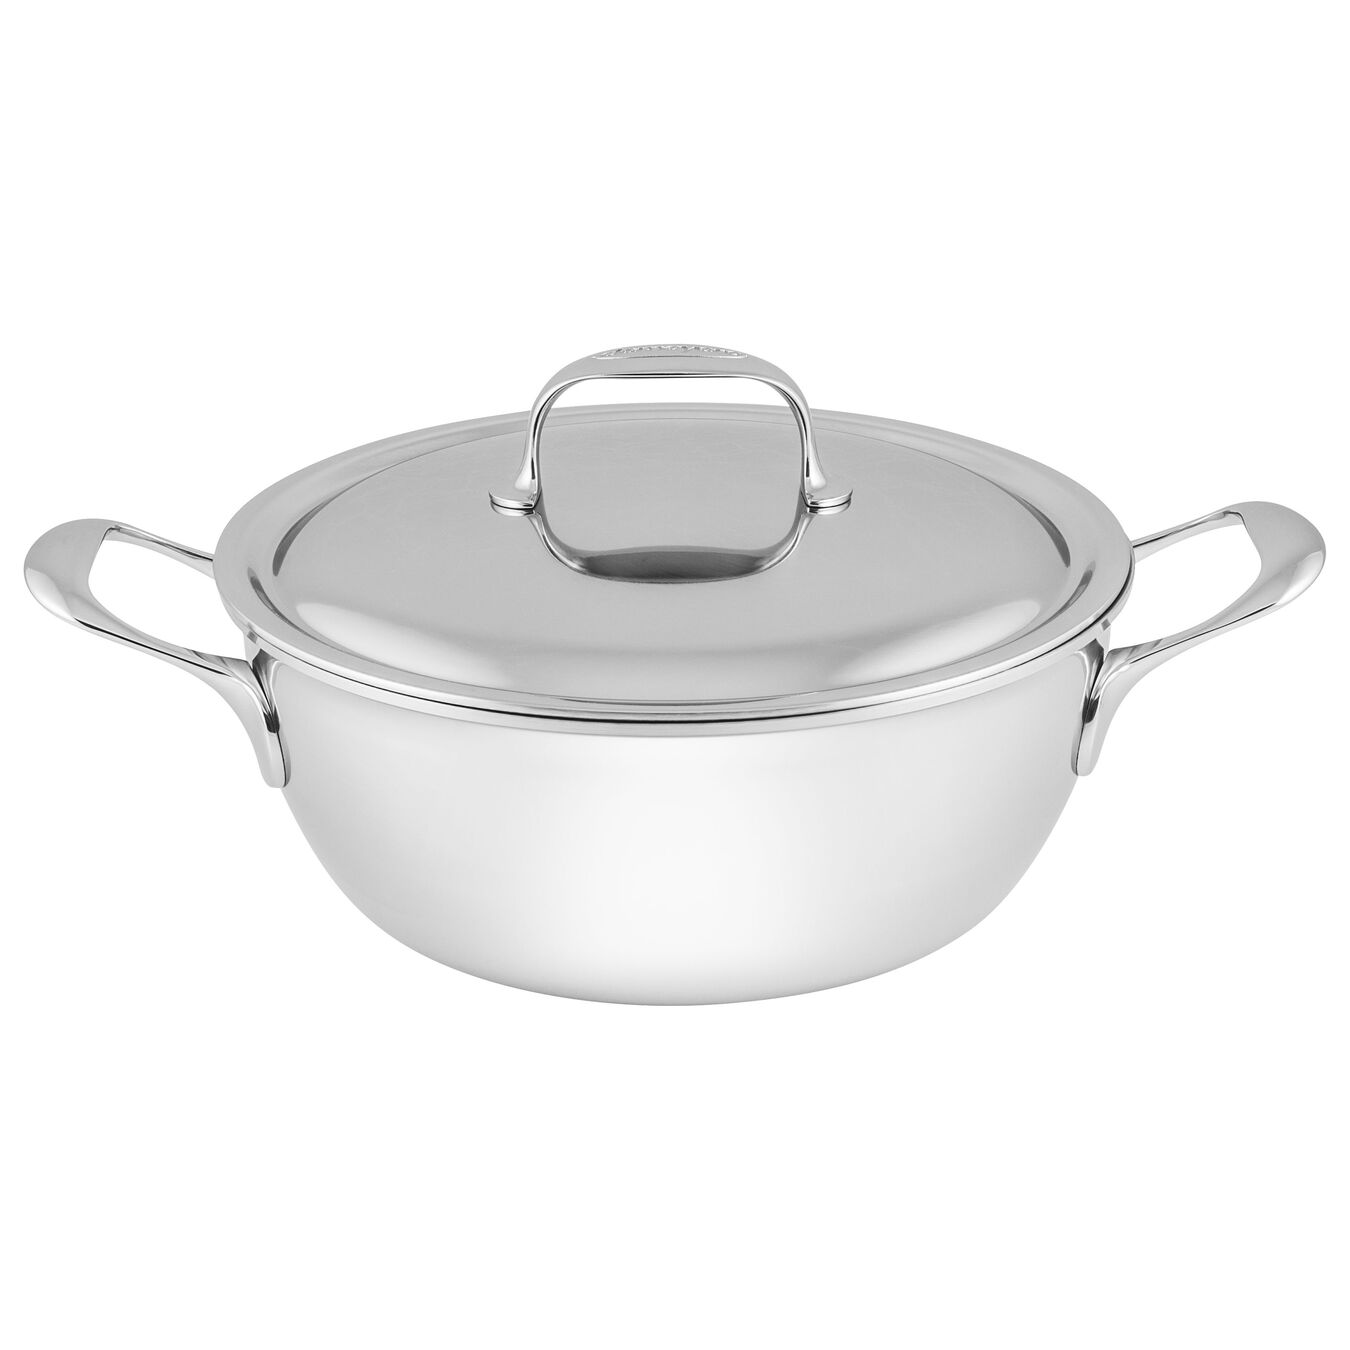 Sauteuse conique 24 cm,,large 1